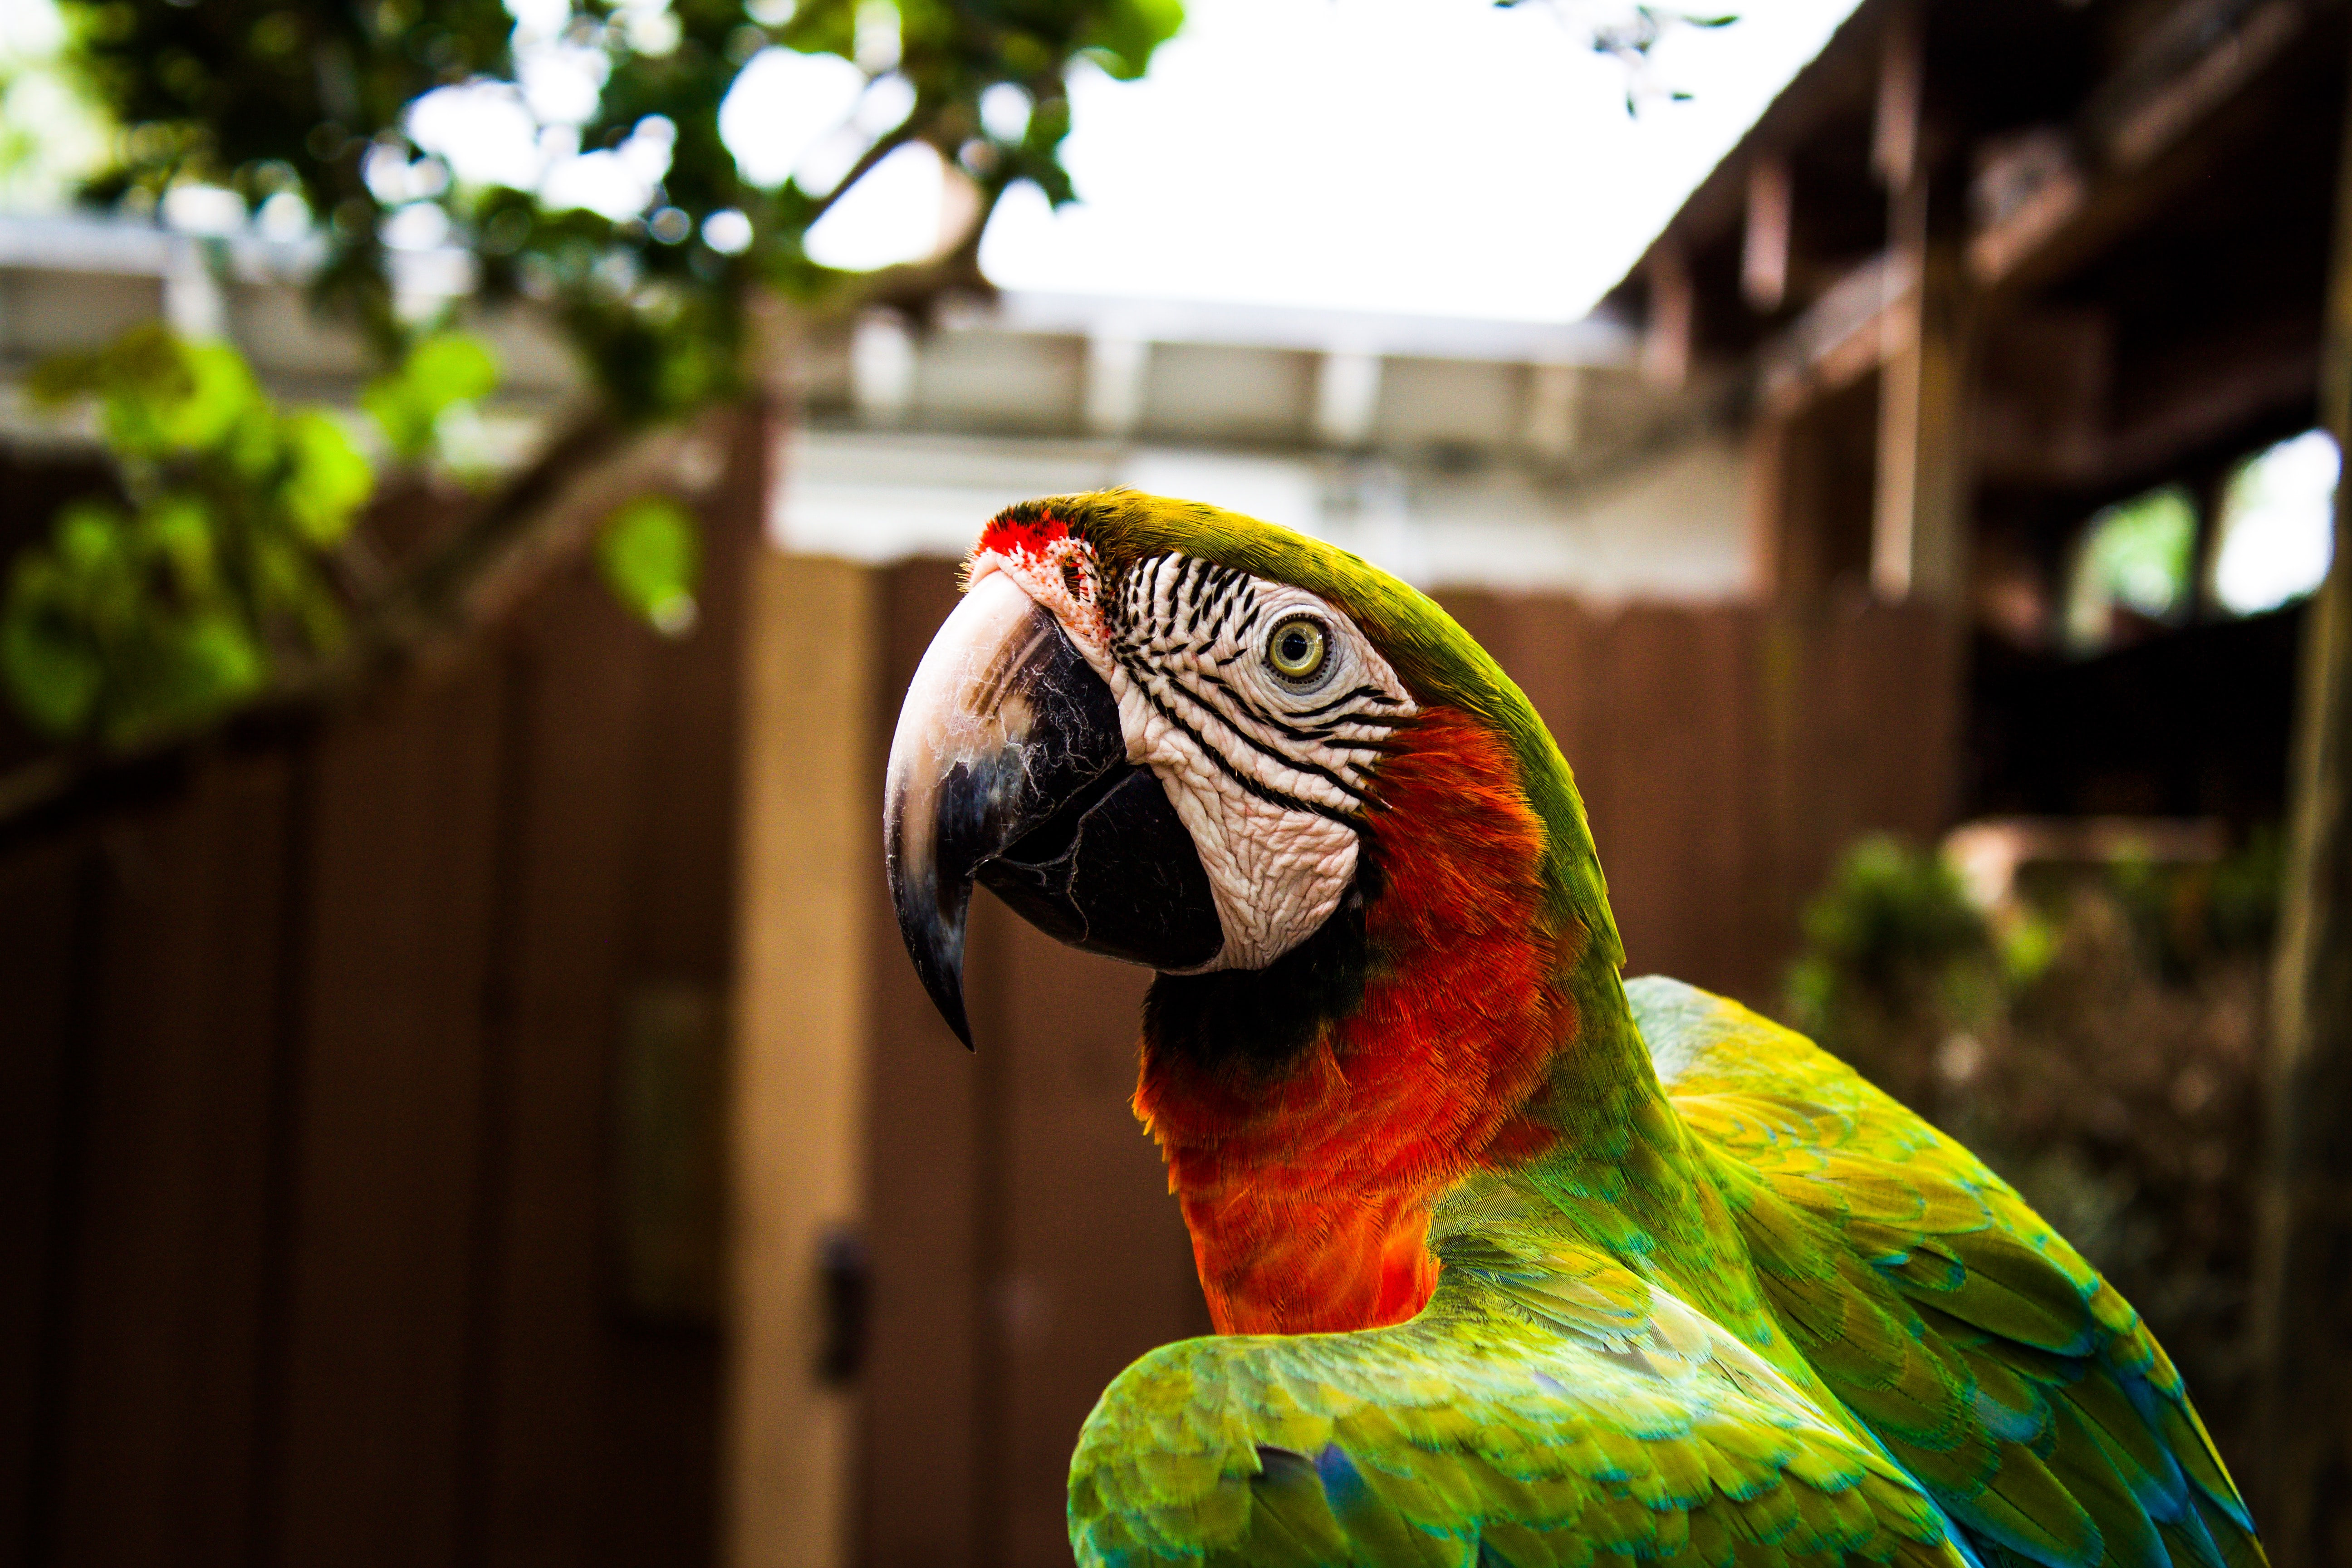 A green and red parrot beside a fence and tree